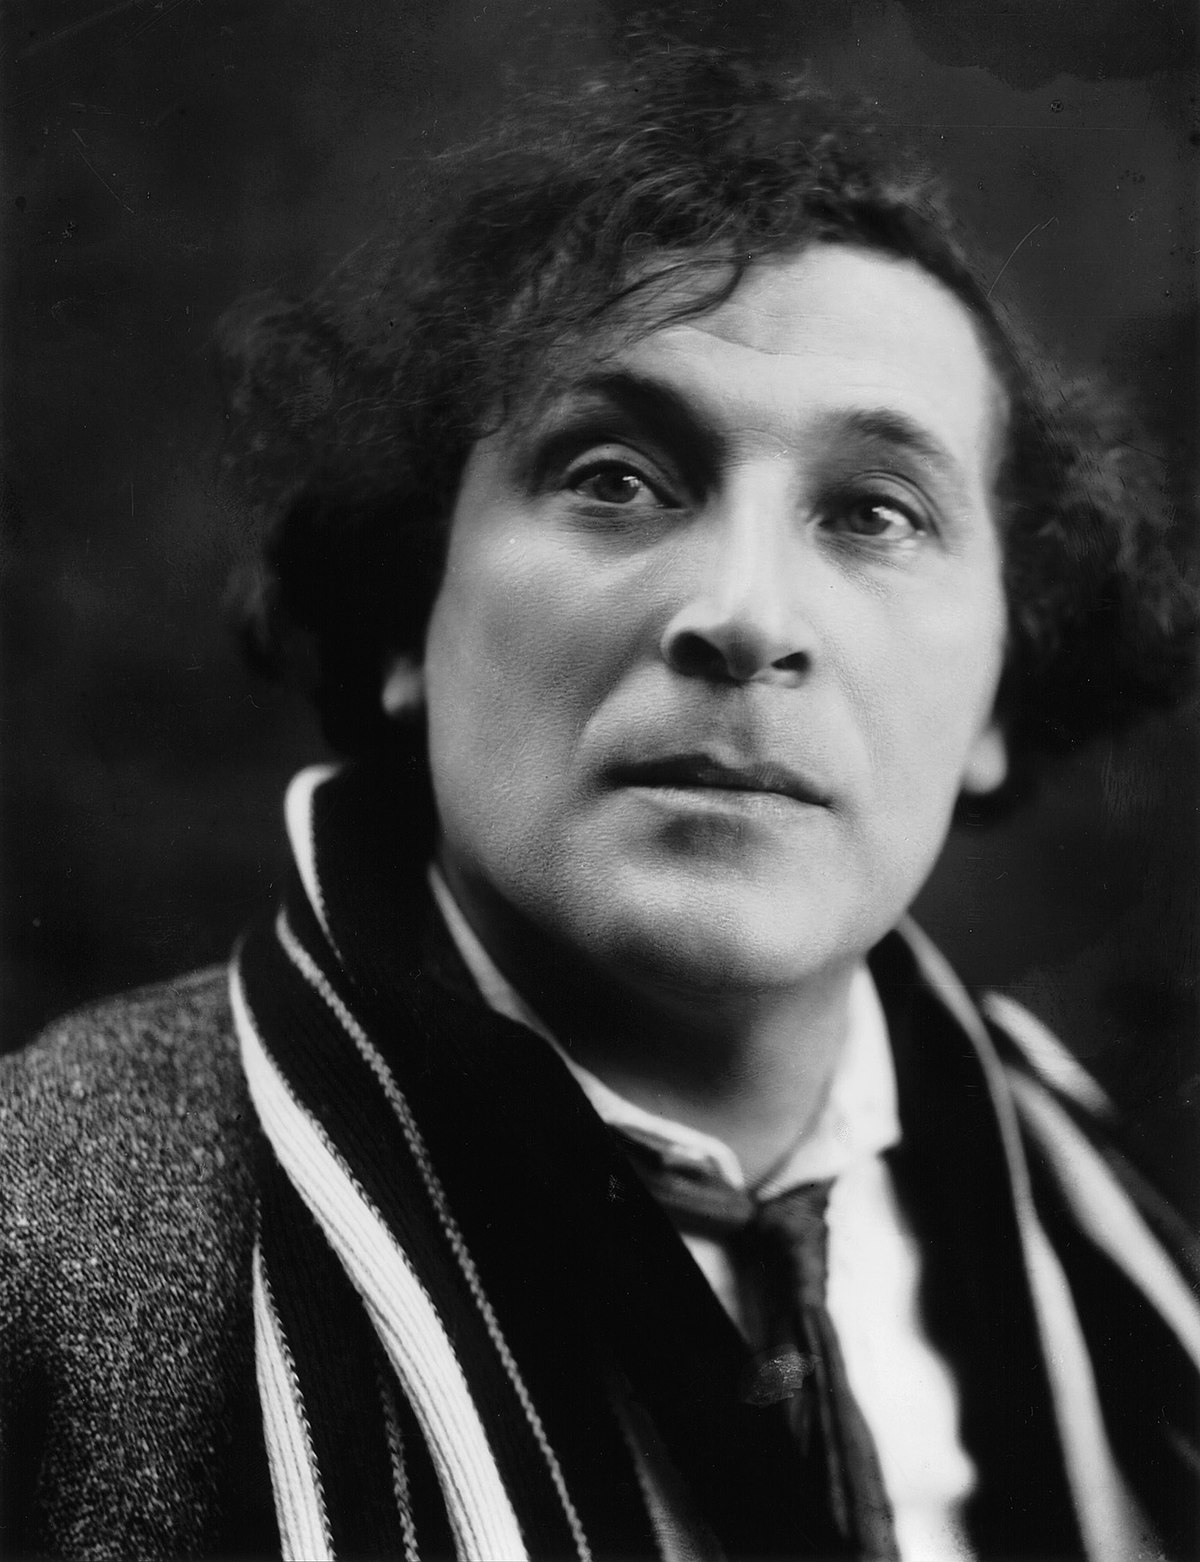 marc chagall happy birthday : marc chagall le peintre 1978 :  marc chagall ziege en 2020/2021